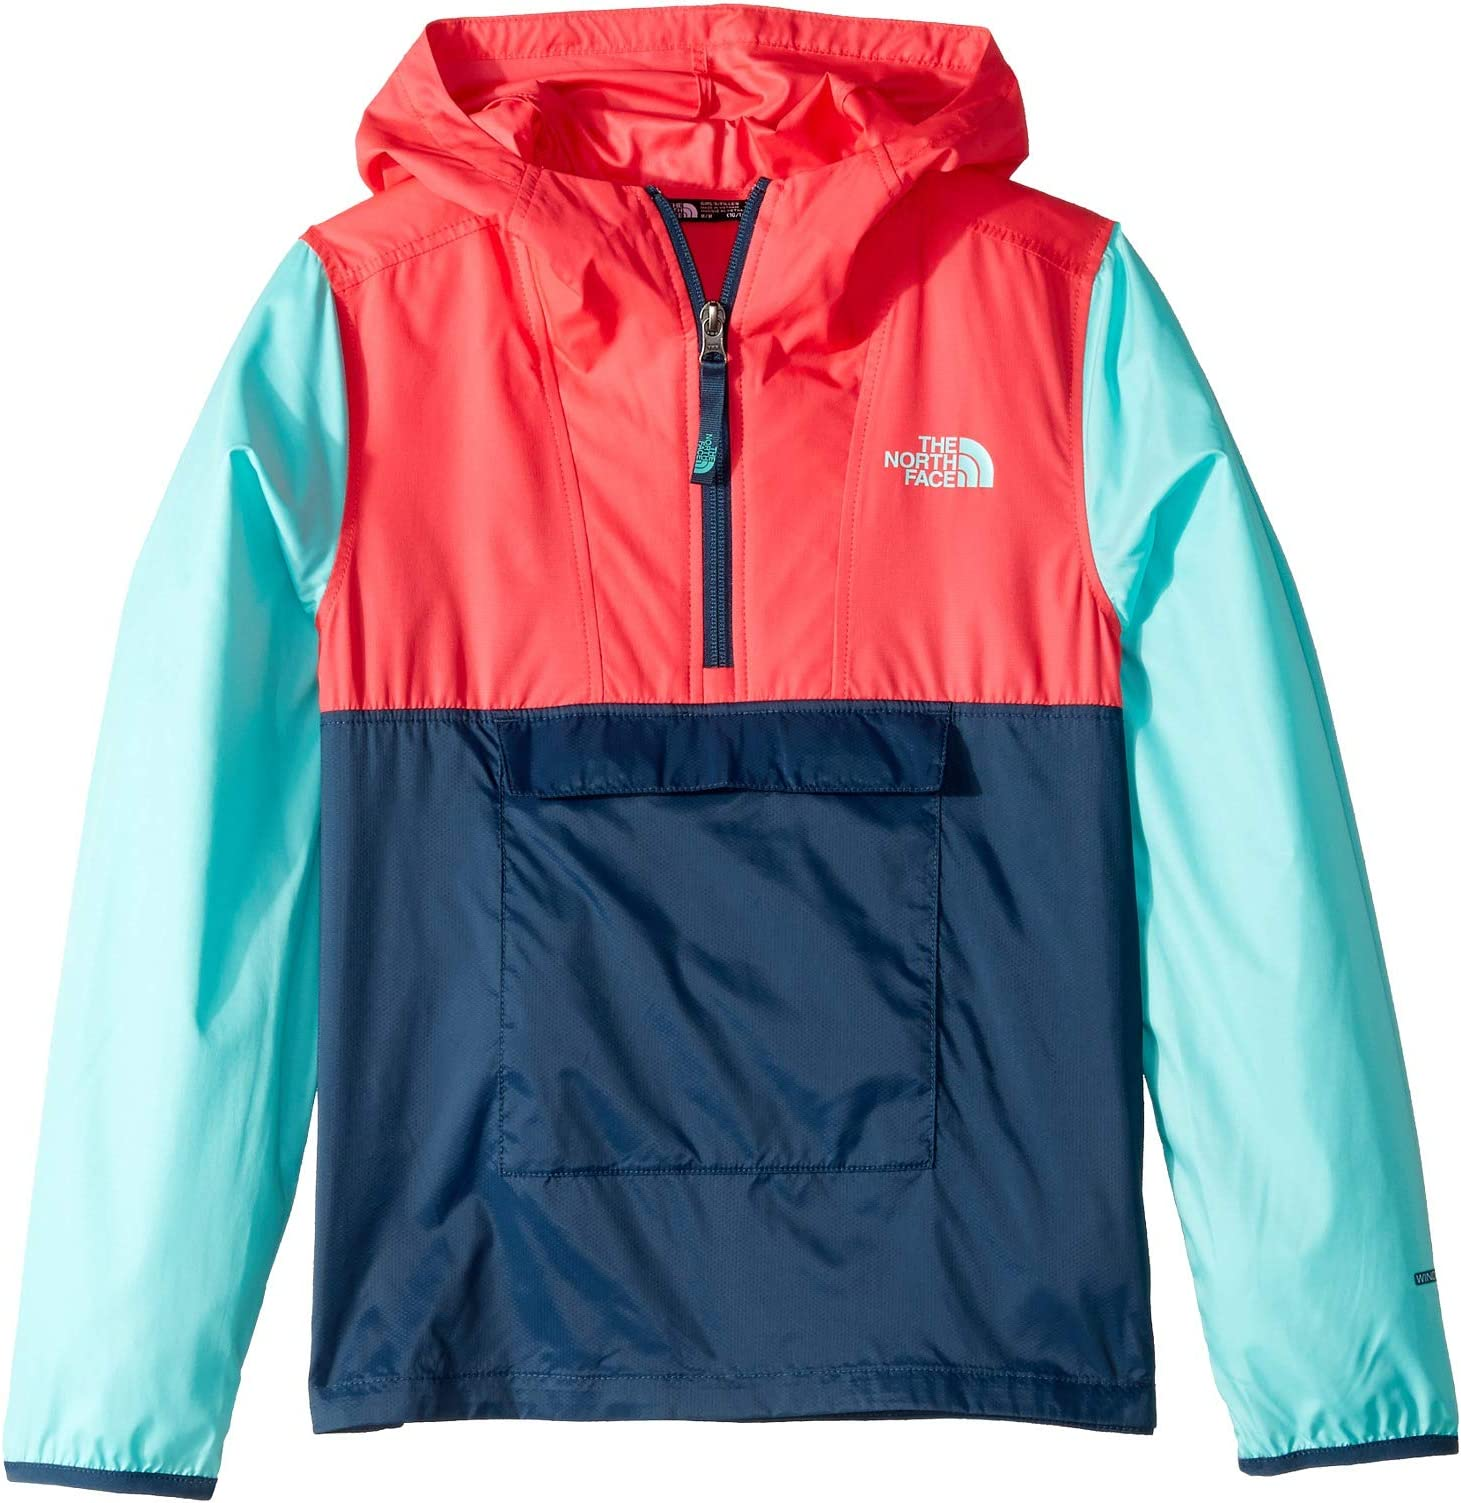 4a39ff9f0 The North Face Outerwear, Shoes, Bags, Clothing | Zappos.com